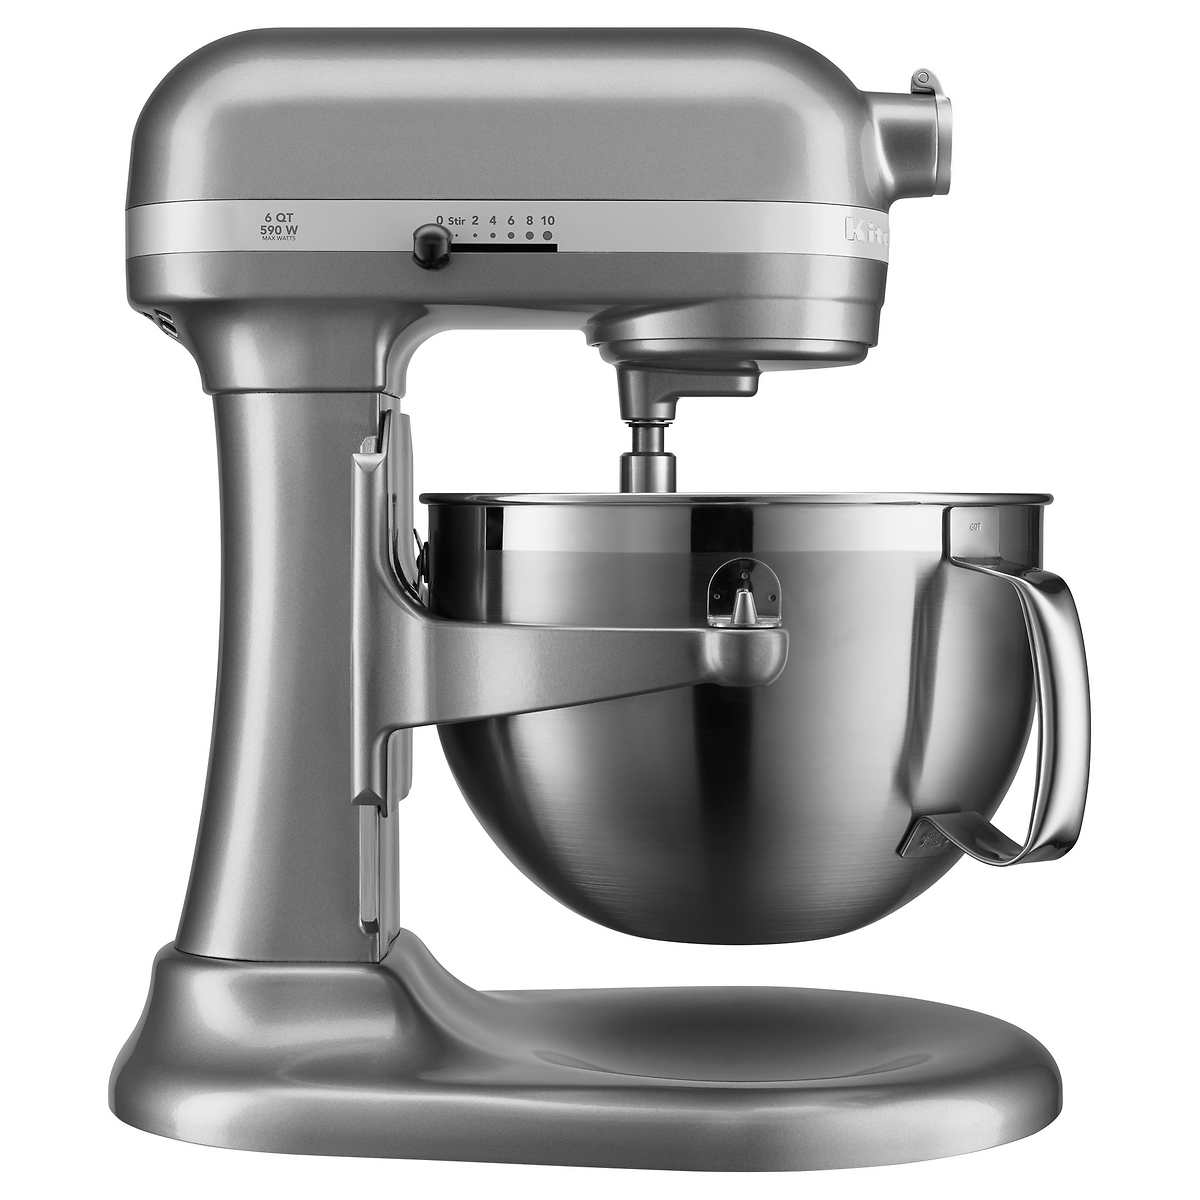 Kitchen aid 6 quart mixer - Kitchenaid 6 Quart Professional Bowl Lift Stand Mixer Click To Zoom